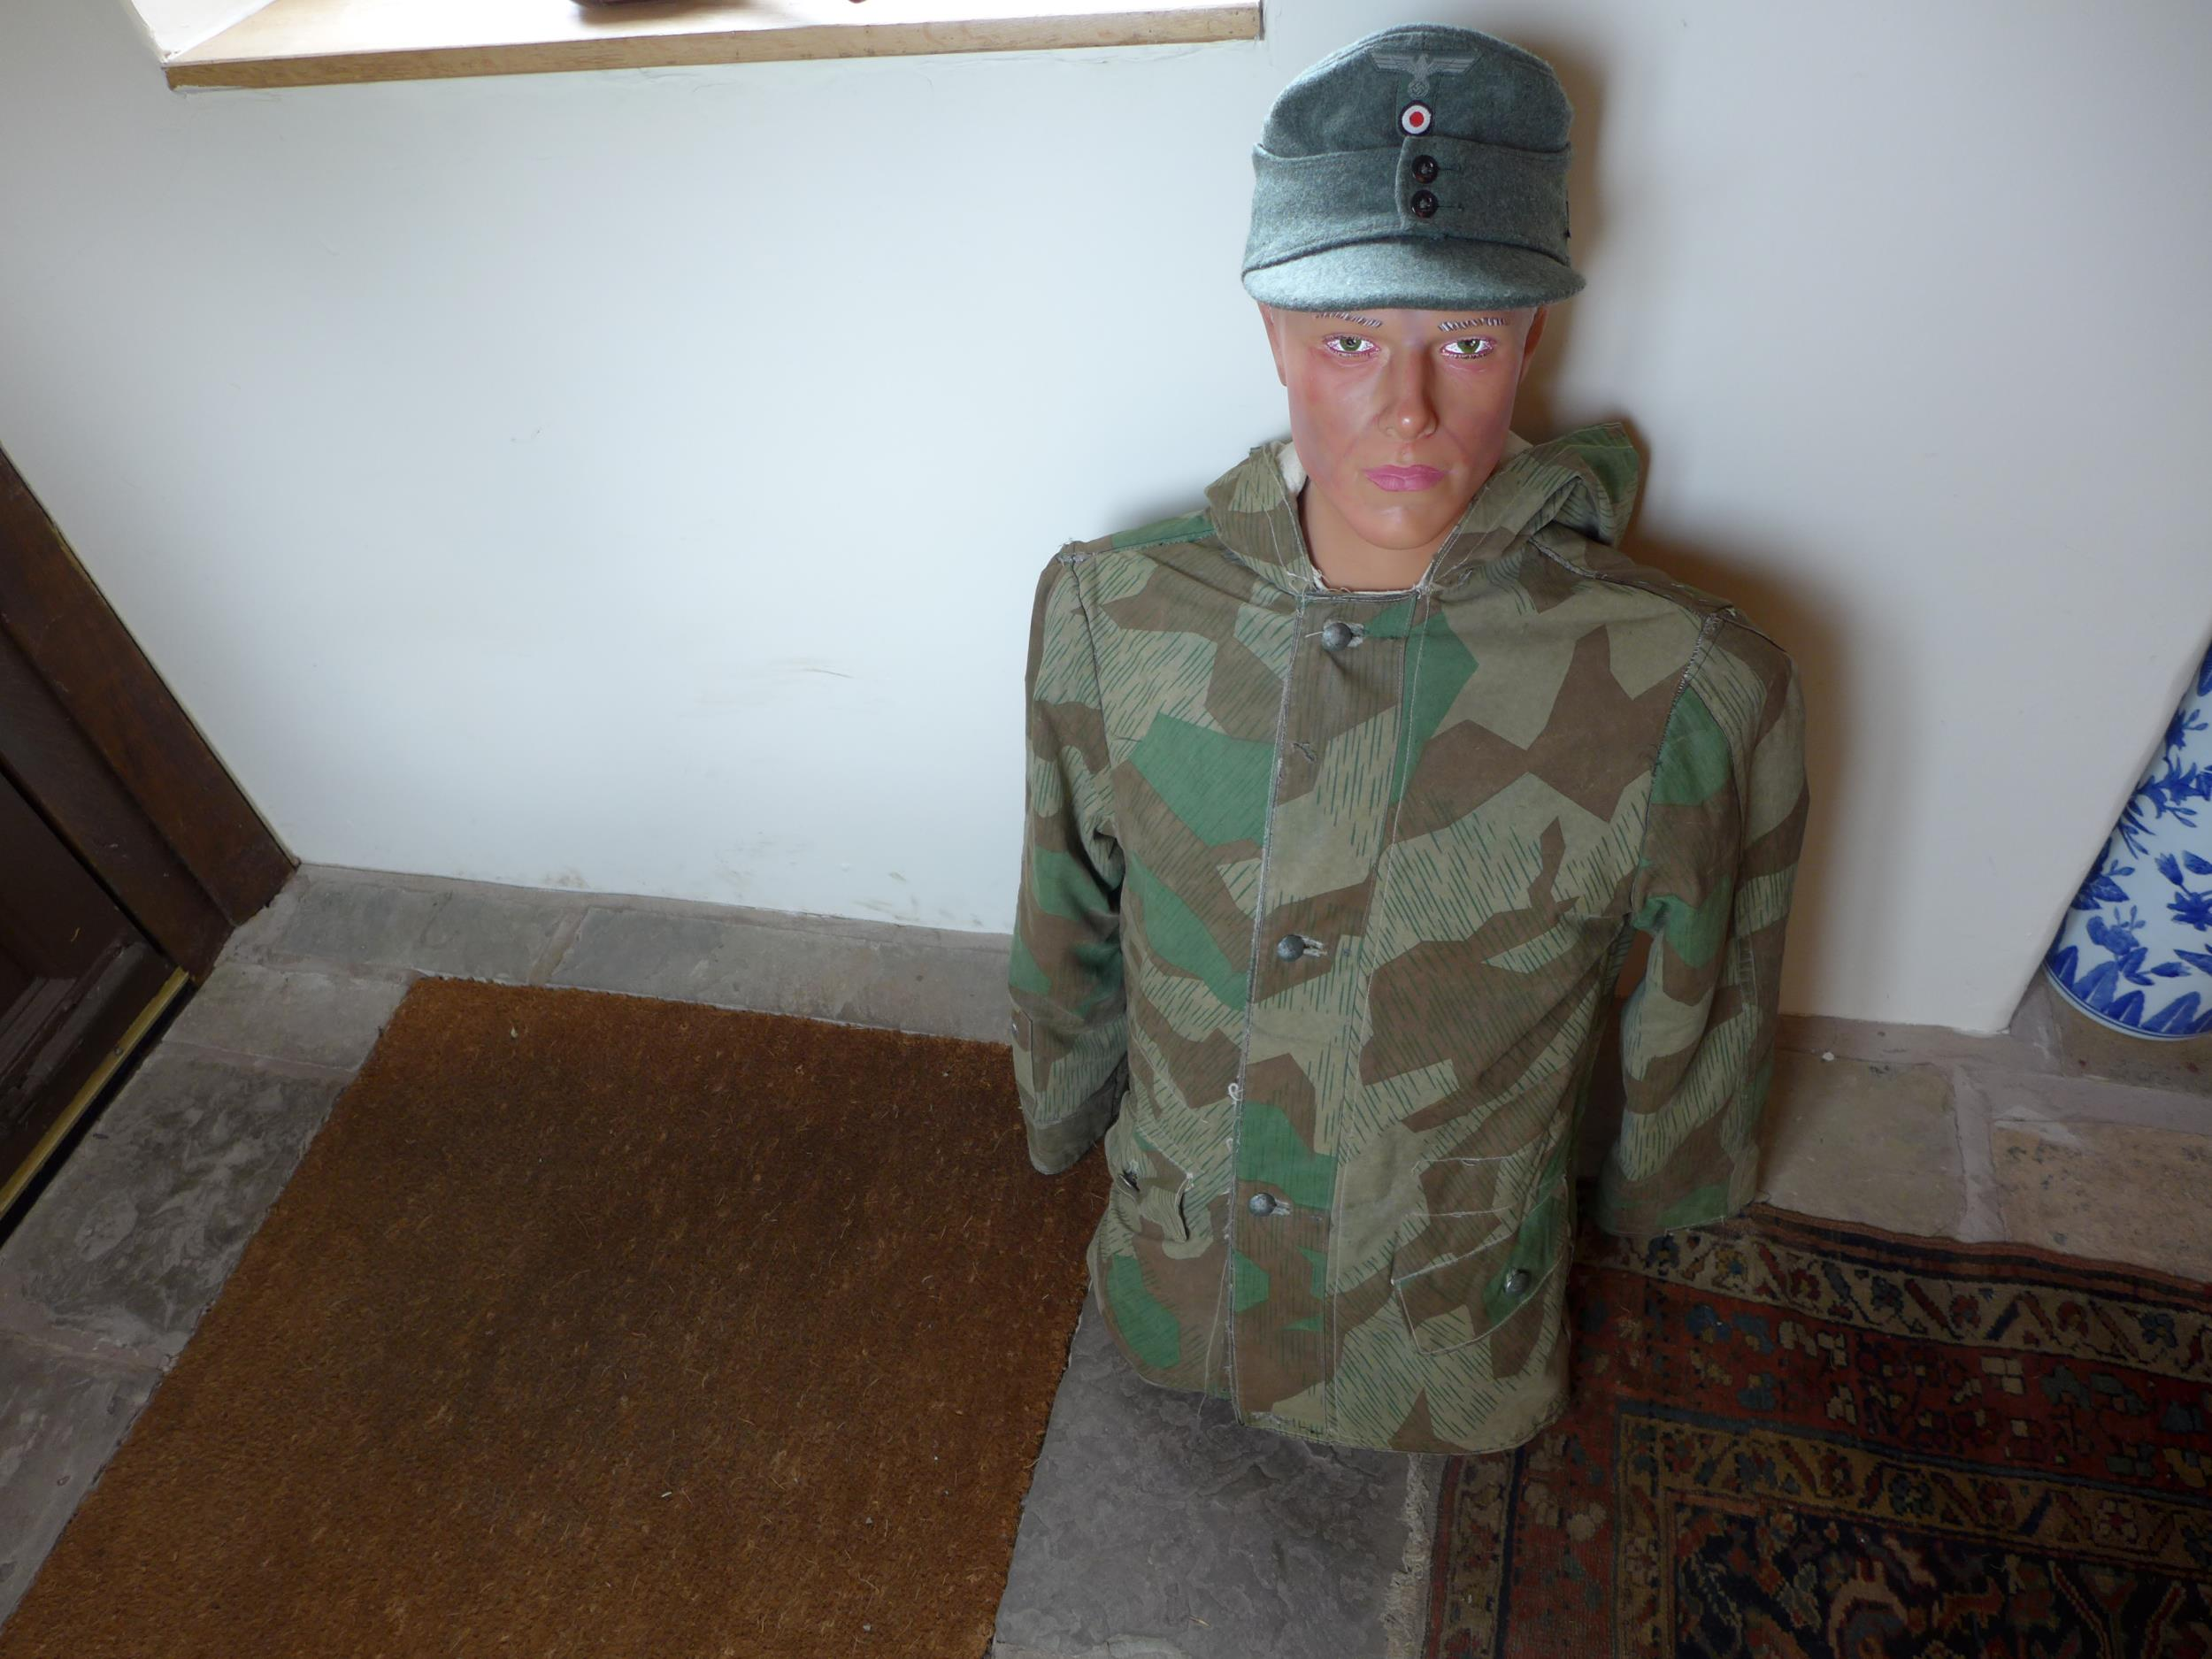 A MALE MANEQUIN WEARING A GERMAN FIELD CAP AND CAMOUFLAGE COAT